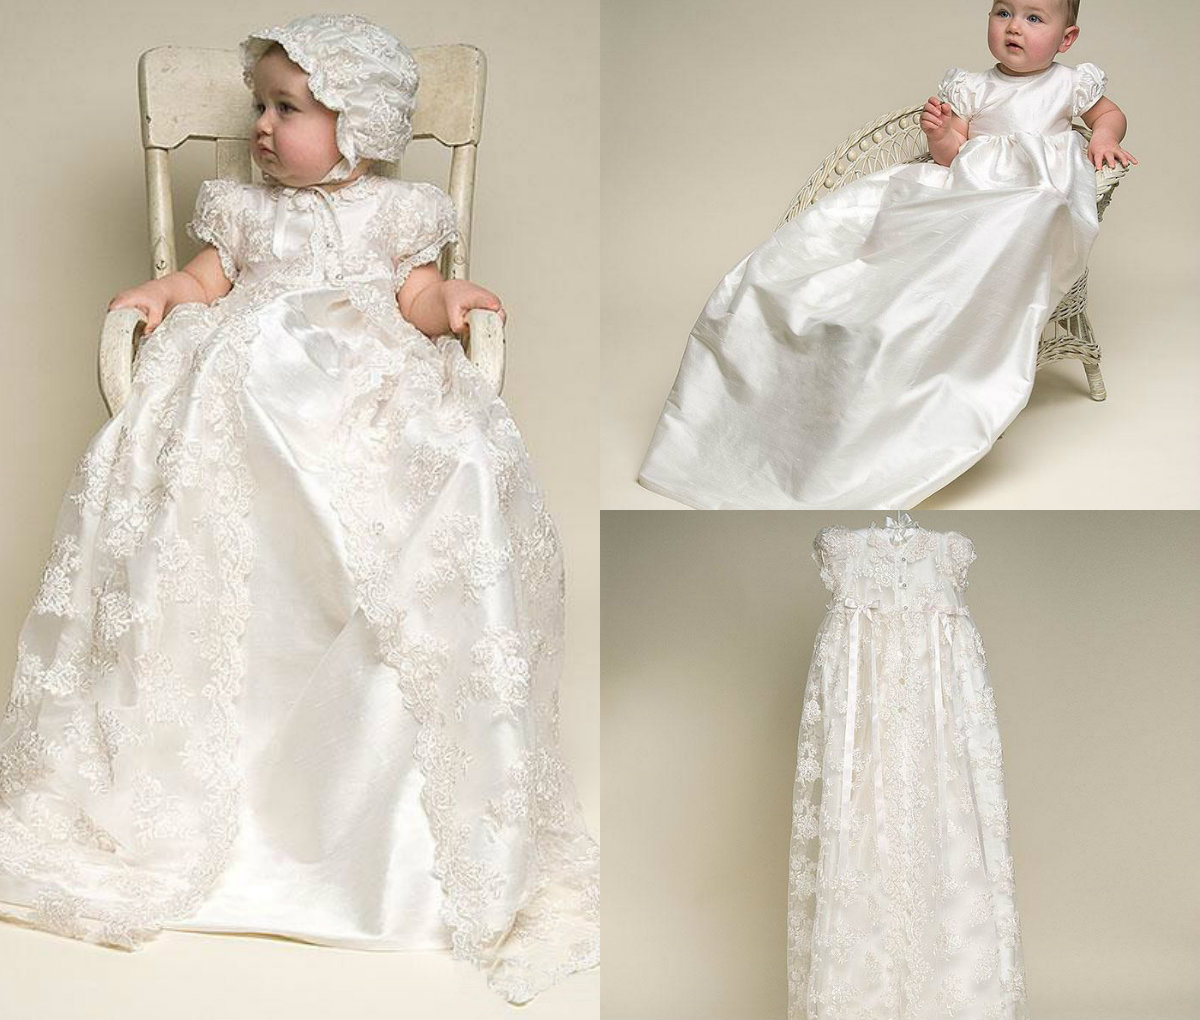 Newdeve Baby-Girls Satin Christening Gown Baptism Dress 0-24M